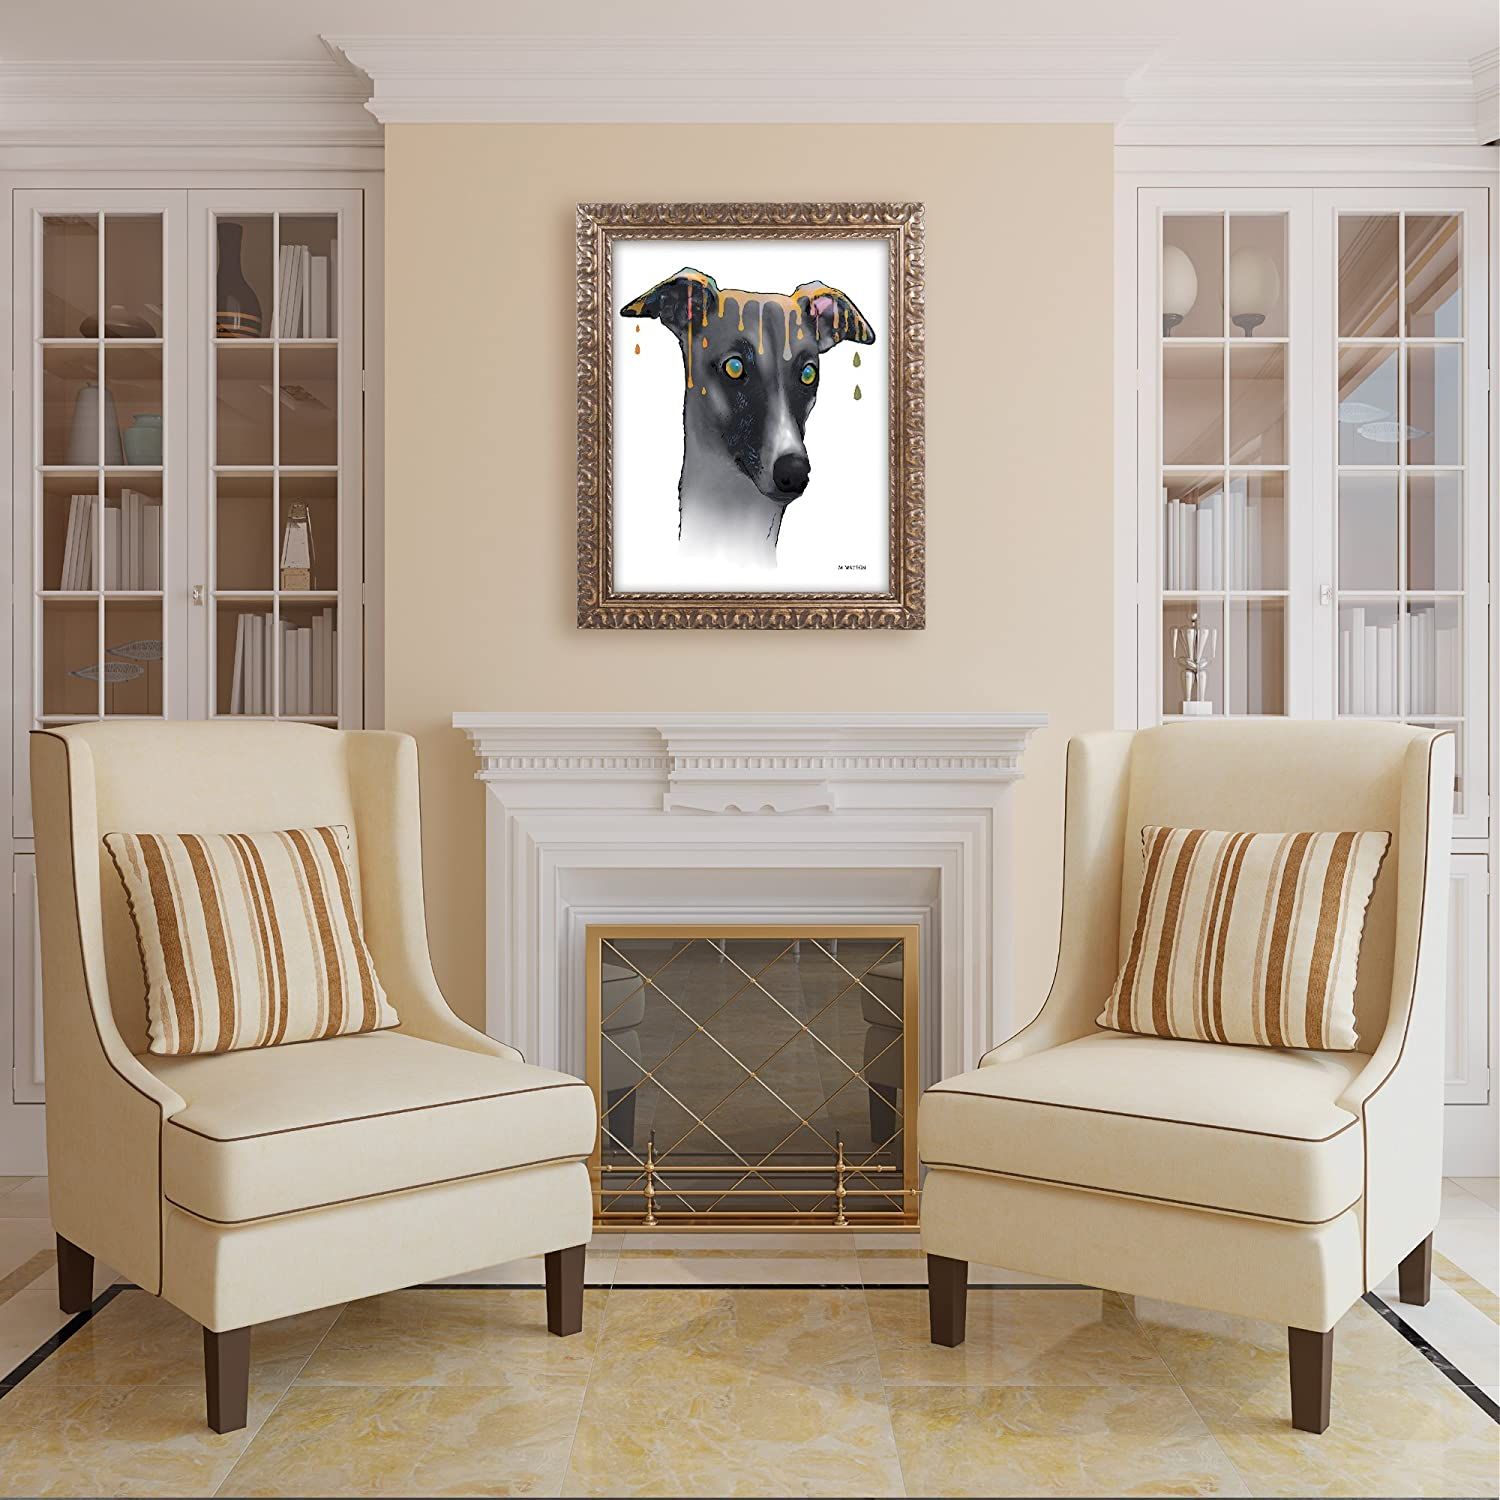 Amazon Com Greyhound Artwork With Ornate Frame By Marlene Watson 16 By 20 Gold Ornate Frame Home Kitchen